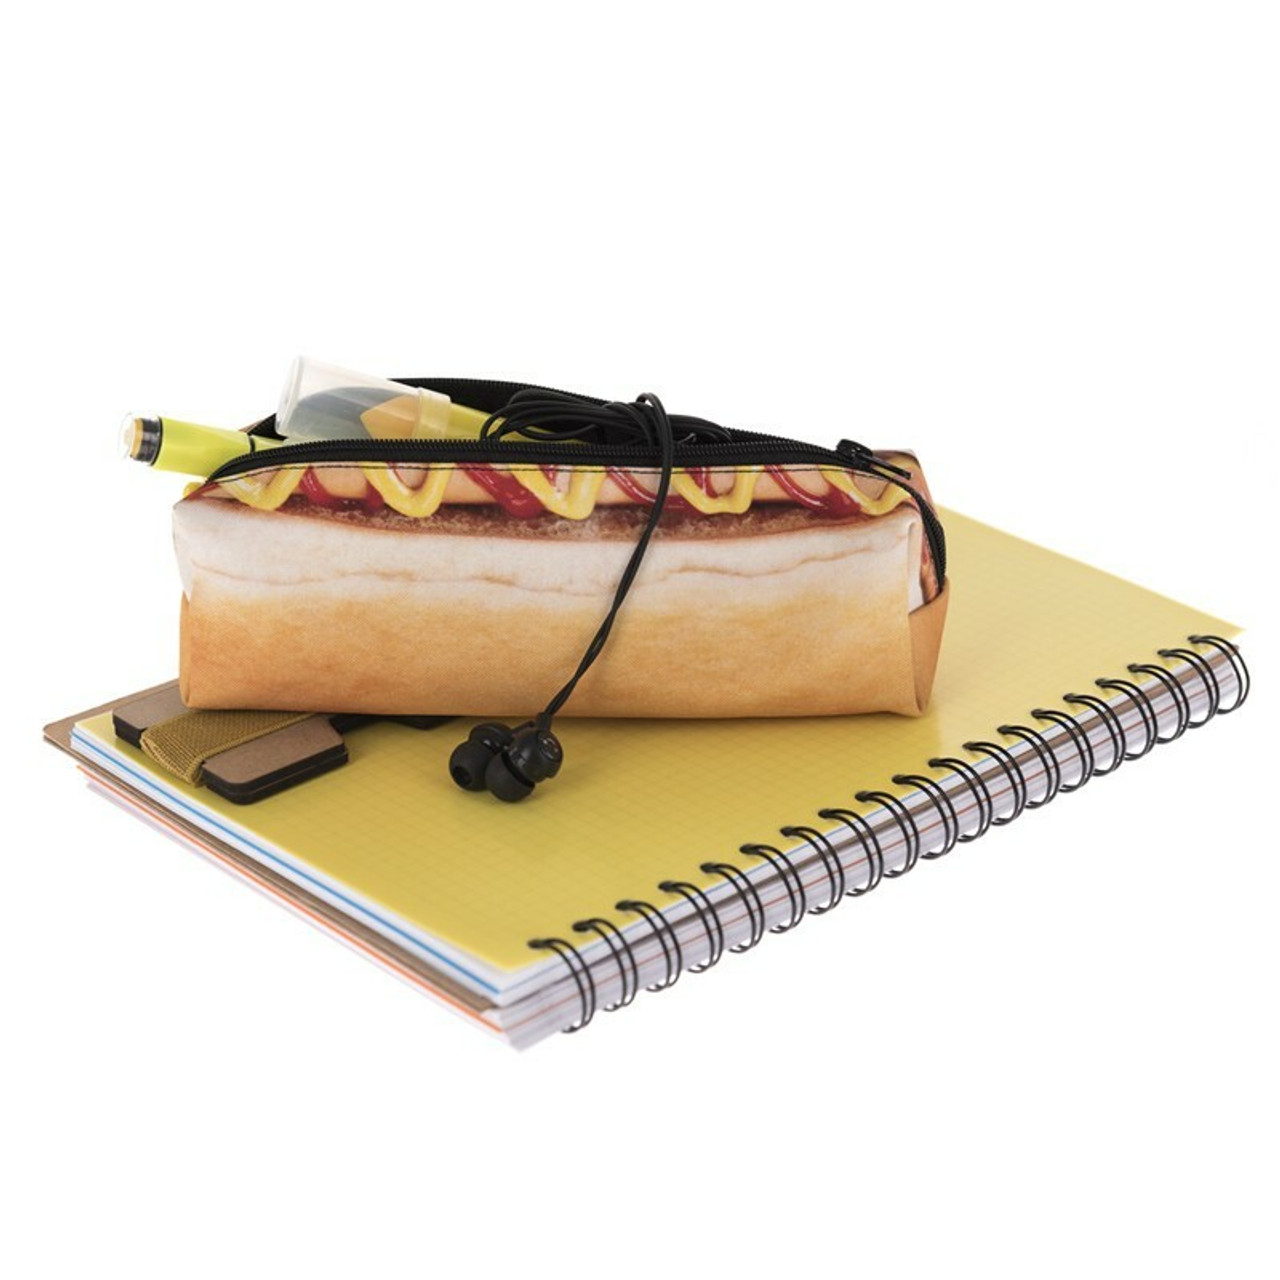 Hot Dog Rectangular Graphic Print Pencil Cosmetics Case - 26 Assorted Styles on top of a notebook